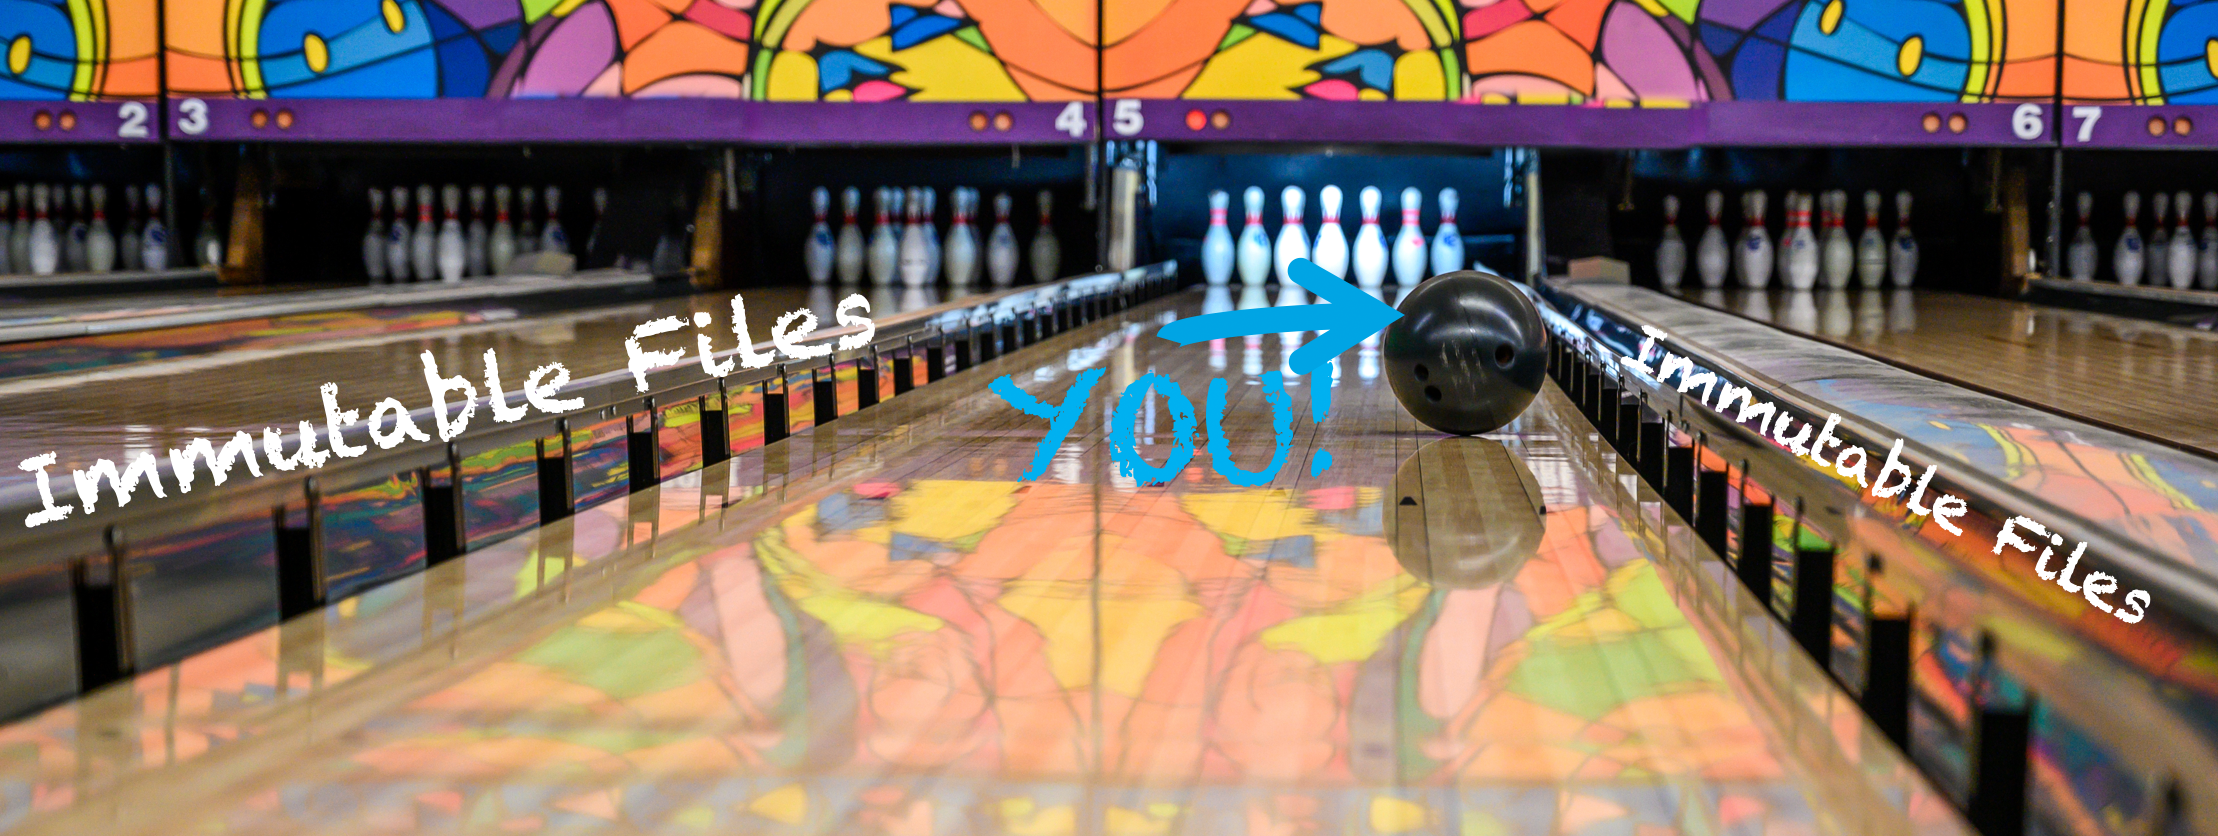 "Shows a bowling lane with a ball rolling down the lane.  The ball has an arrow with the word showing ""you"".  The gutter bumpers are raised and they have the words ""immutable files"" above them."